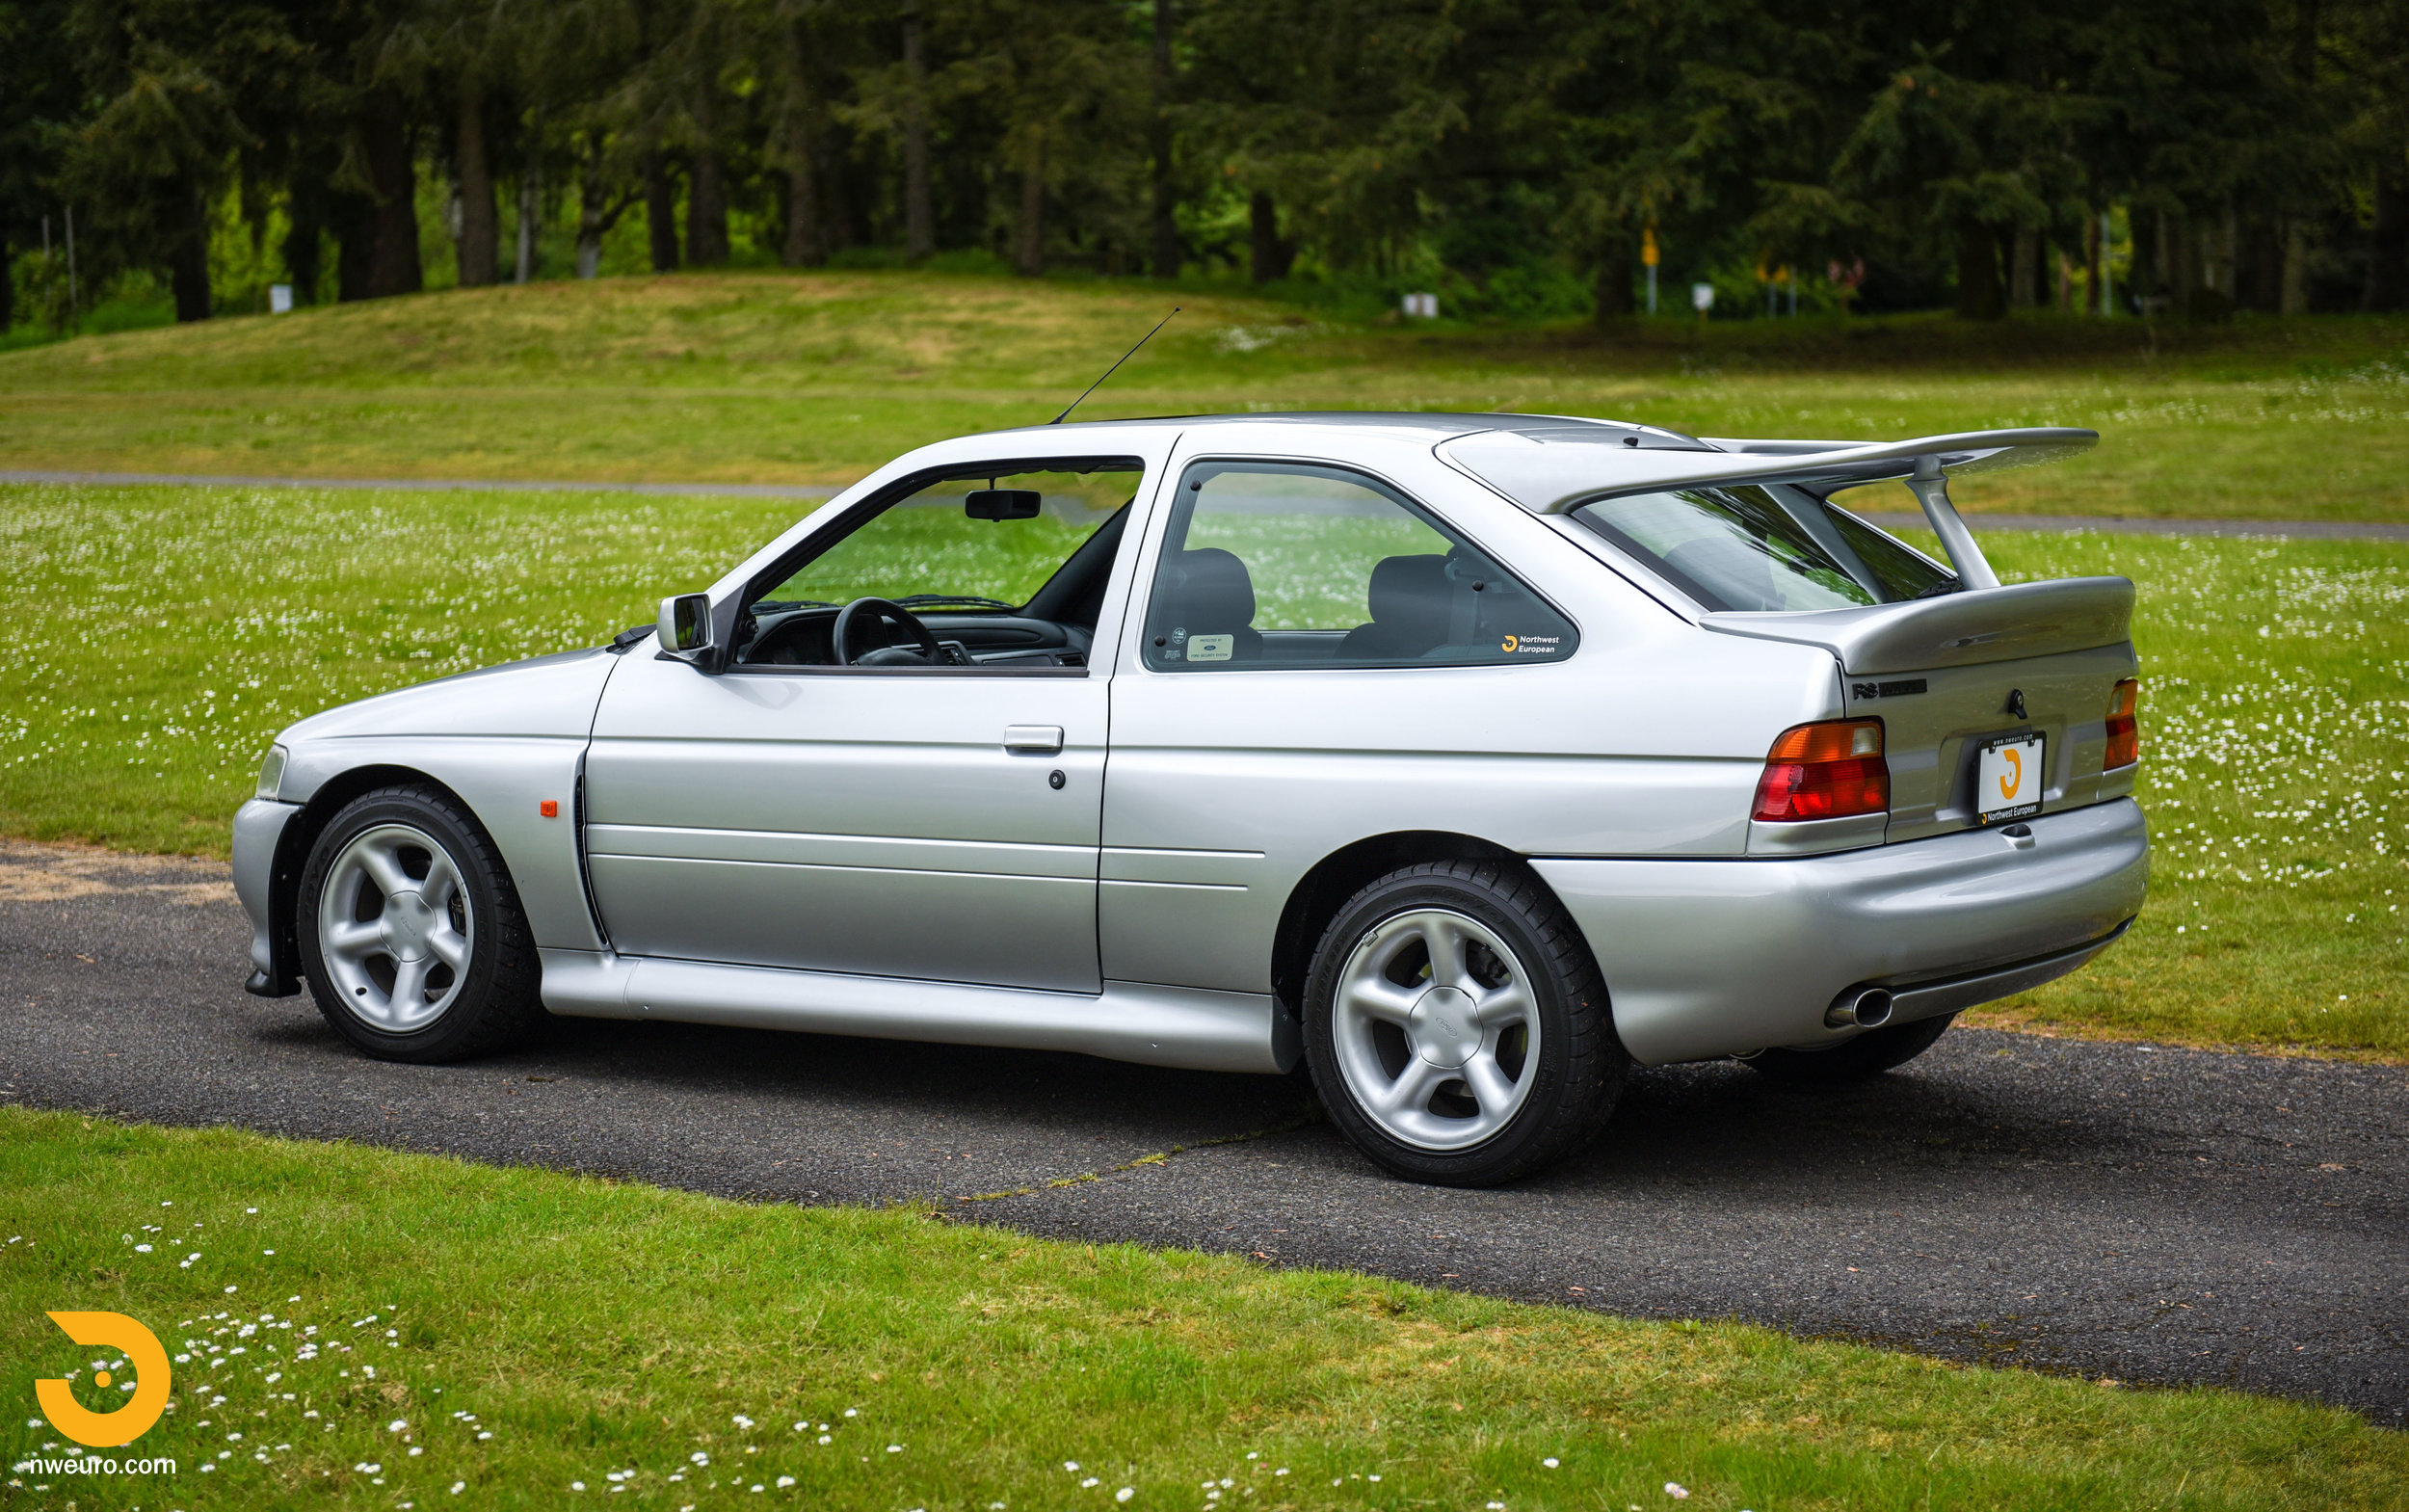 1995 Ford Escort Cosworth RS Silver-17.jpg